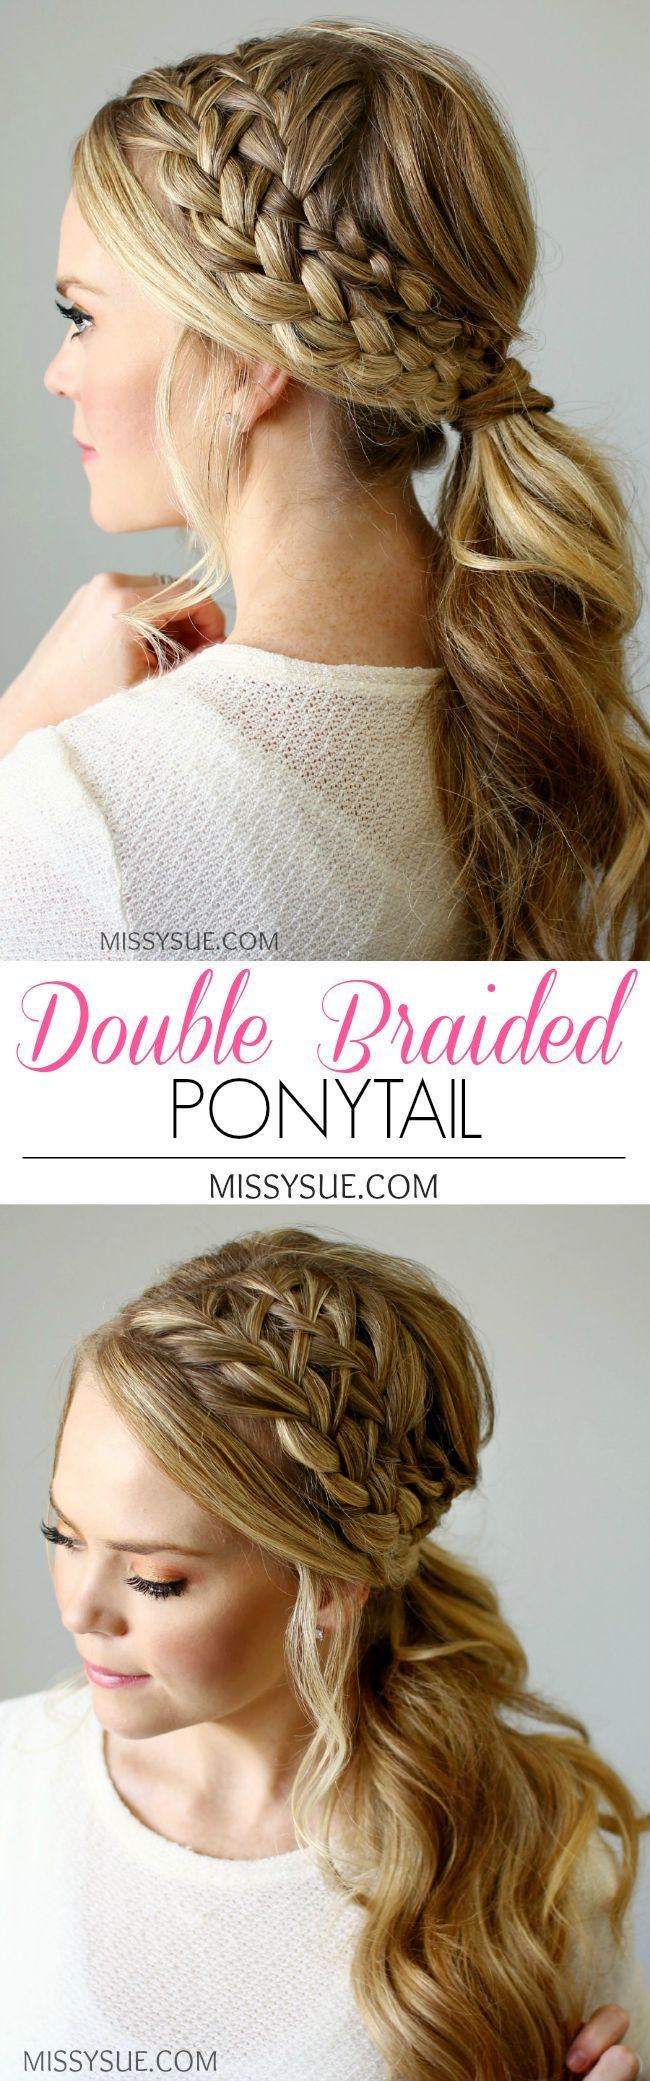 double braided ponytail | double braid, braided ponytail and ponytail